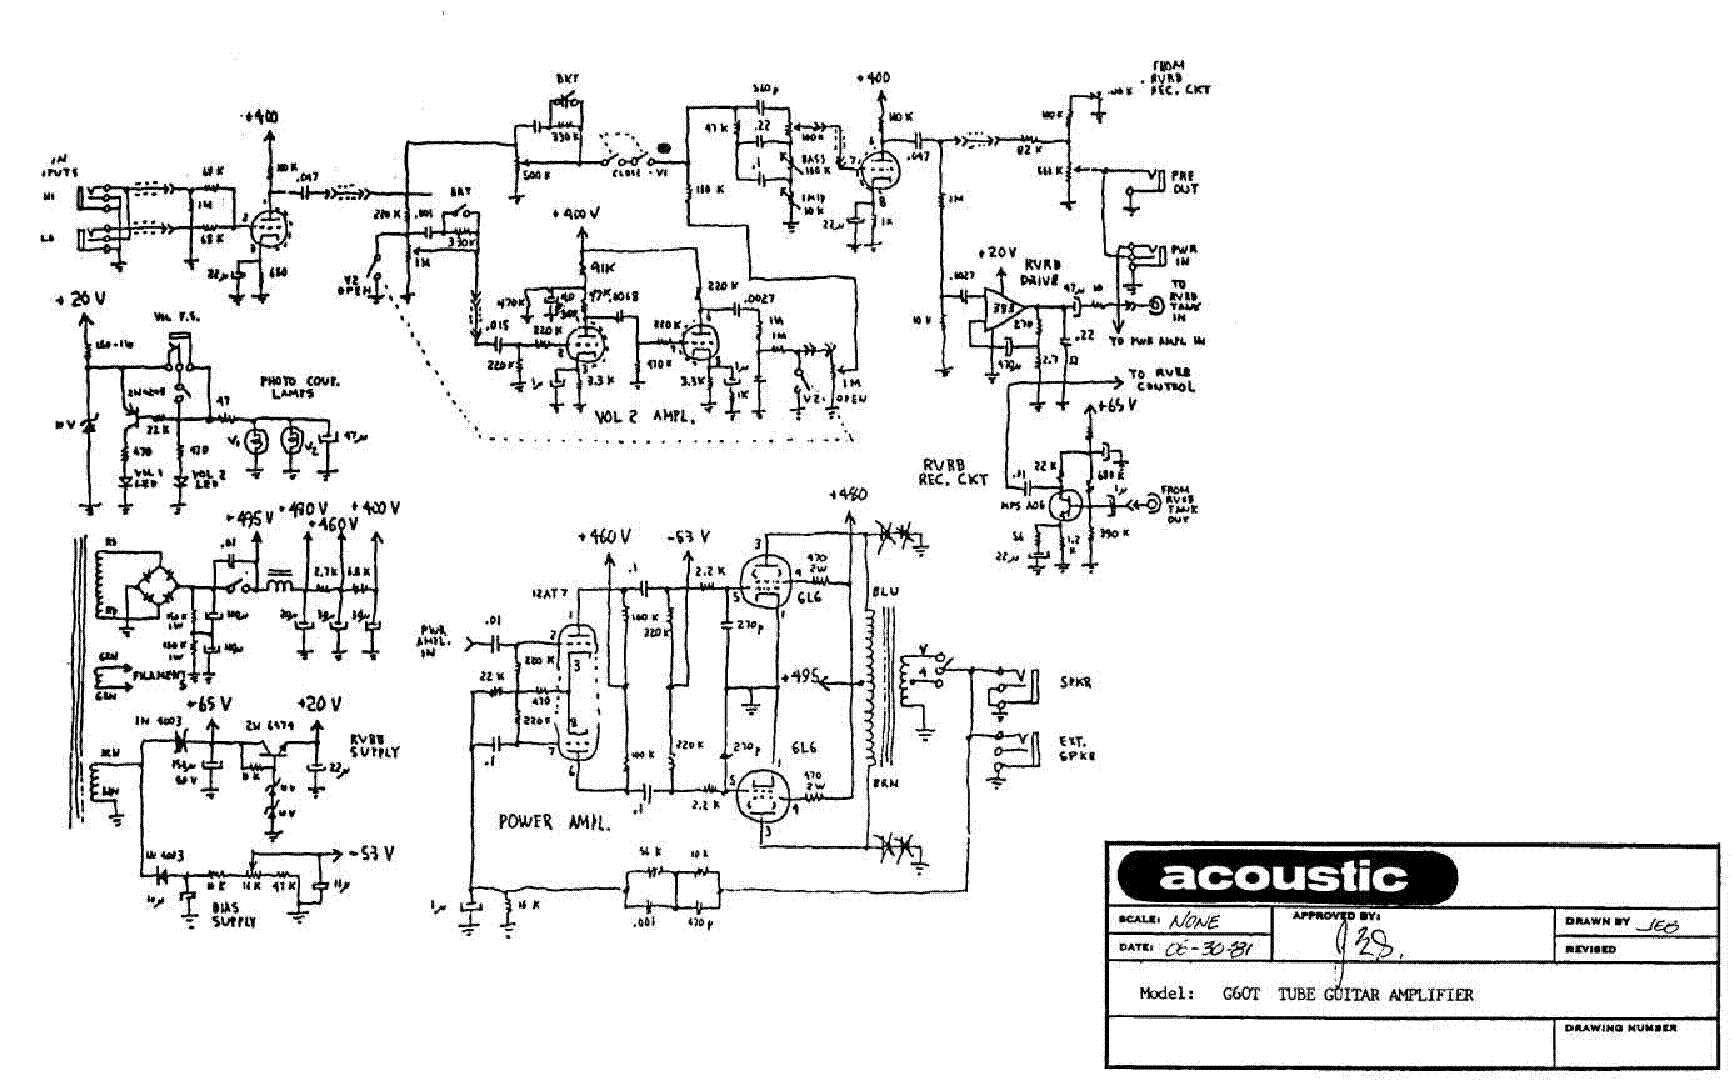 Acoustic Guitar Wiring Diagram Libraries Additionally Fender Diagrams On Third Levelacoustic Schematics Schema